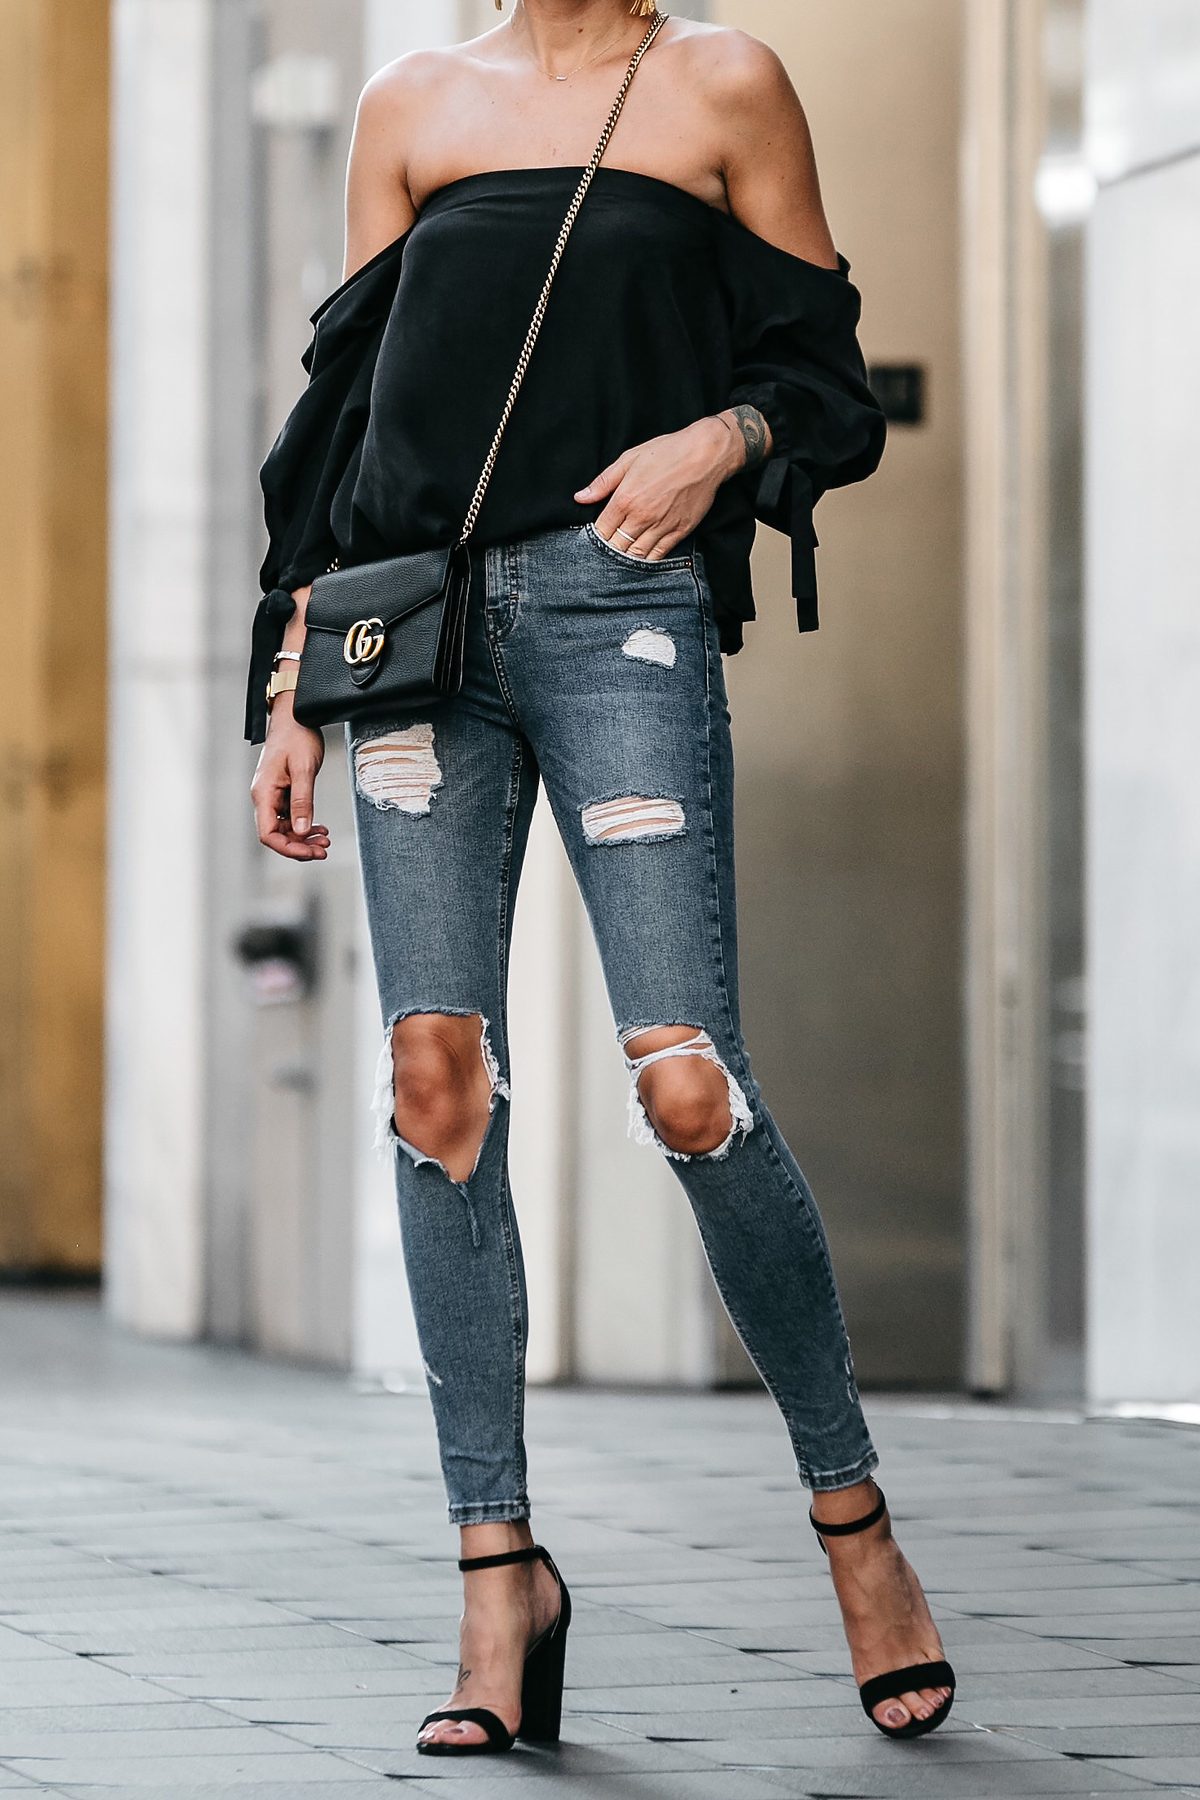 Club Monaco Black Off-the-Shoulder Top Denim Ripped Skinny Jeans Outfit Black Ankle Strap Heeled Sandals Gucci Marmont Handbag